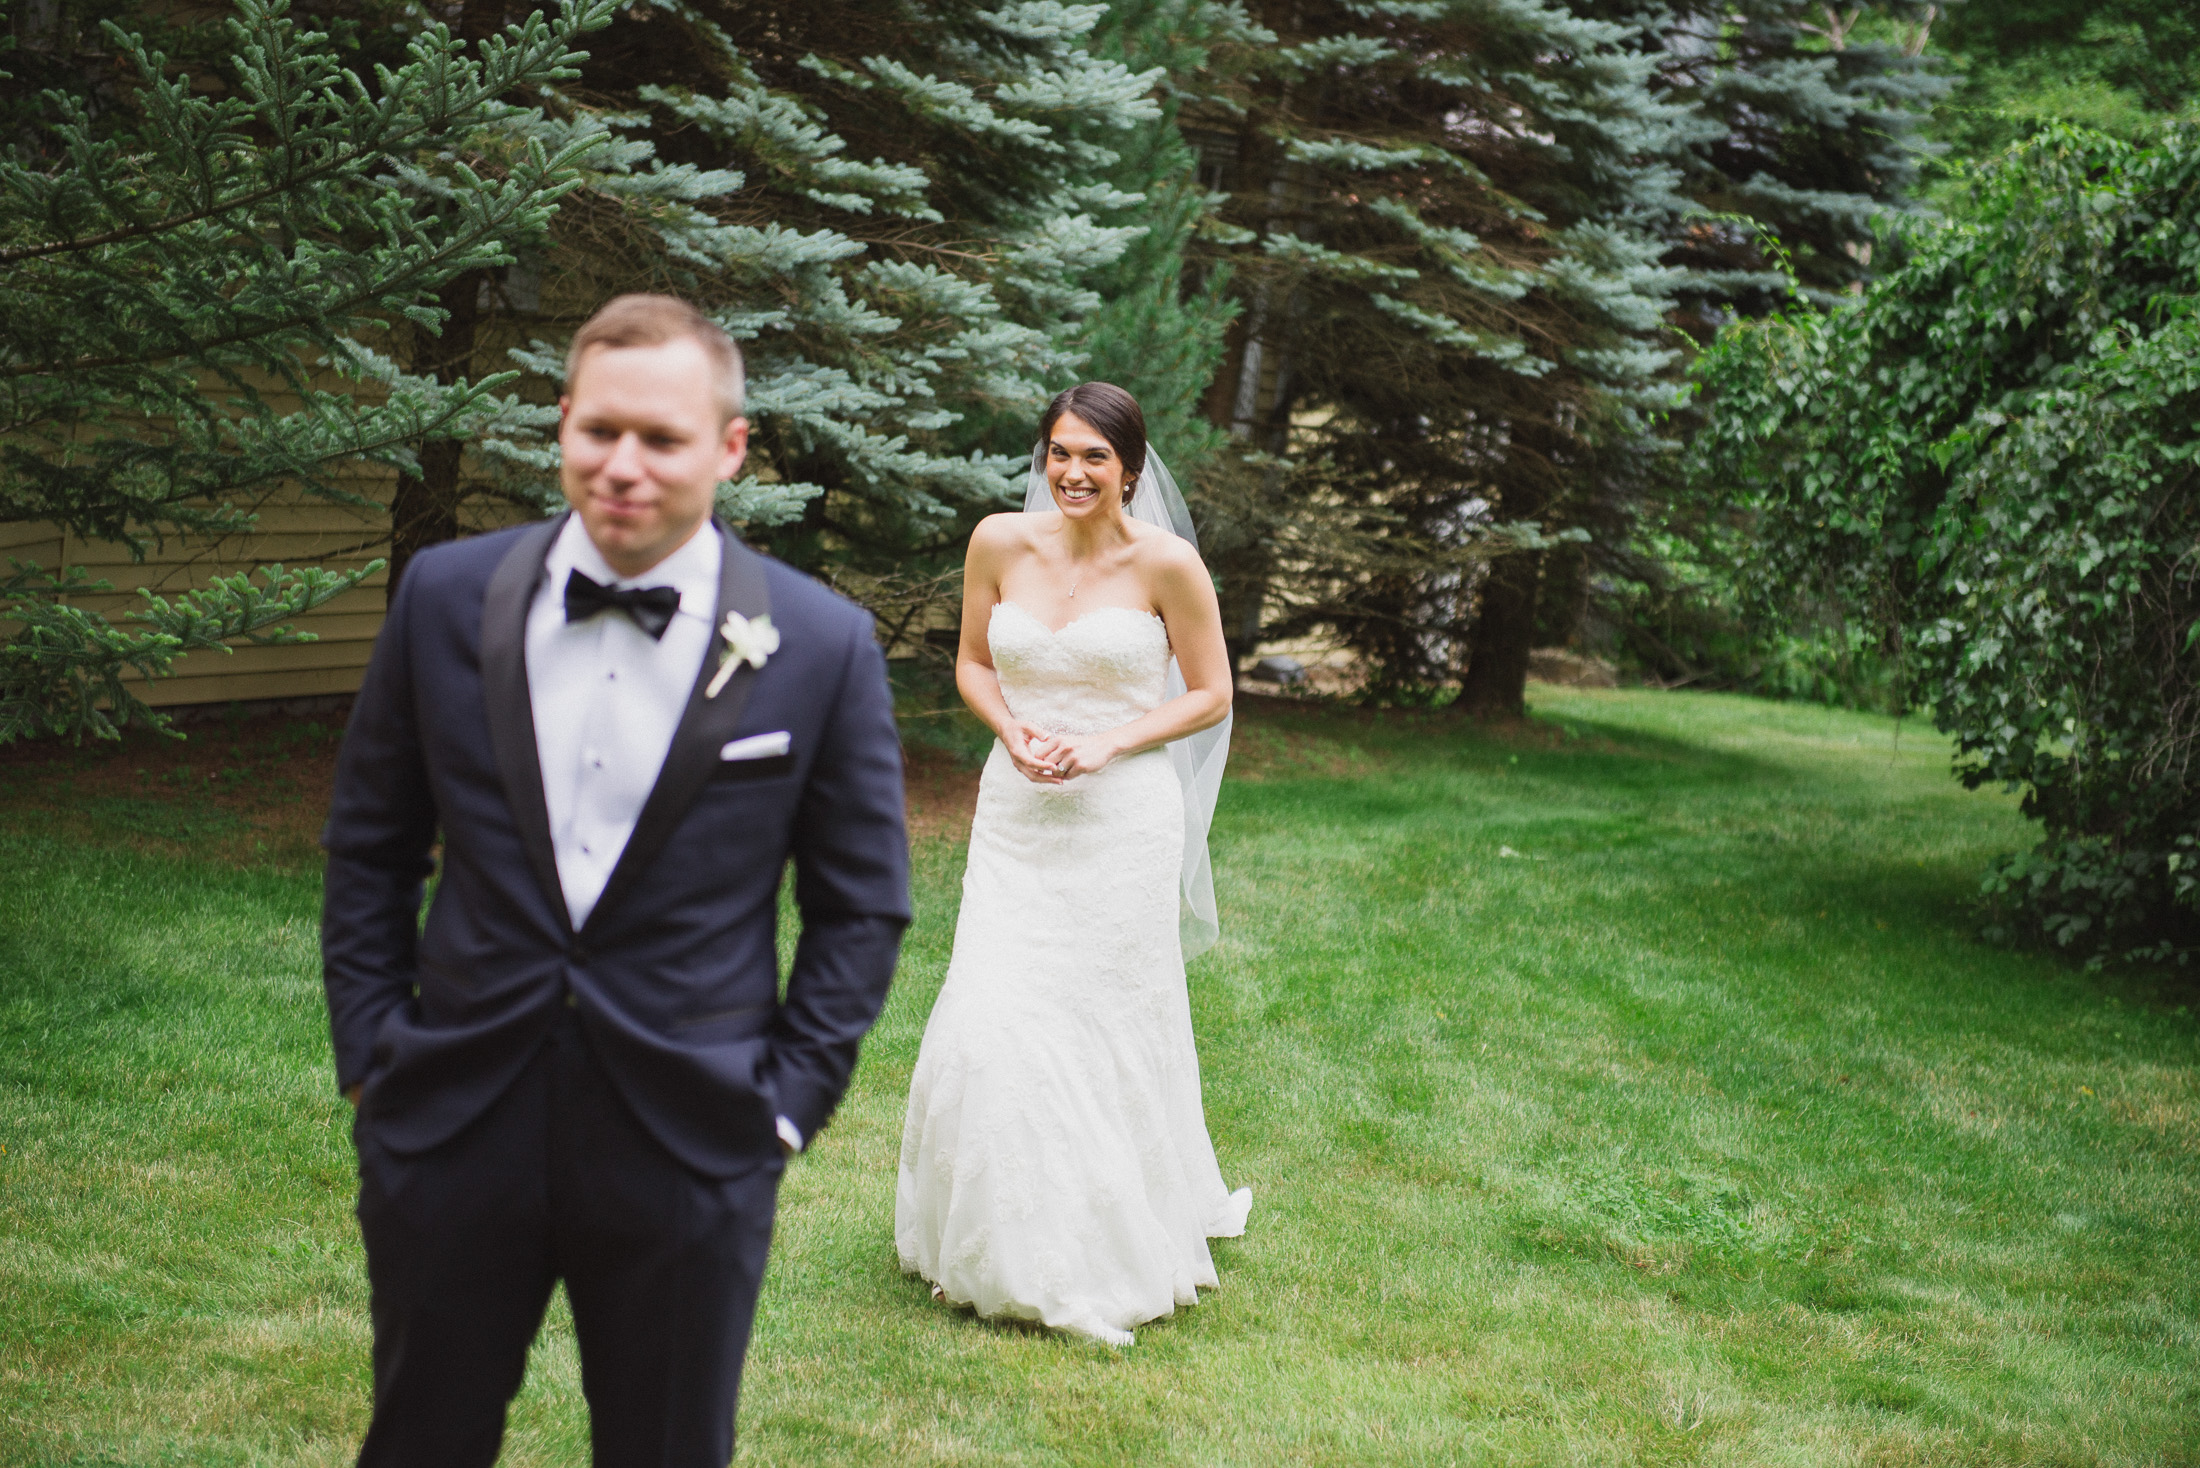 NH Wedding Photography: bride and groom first look